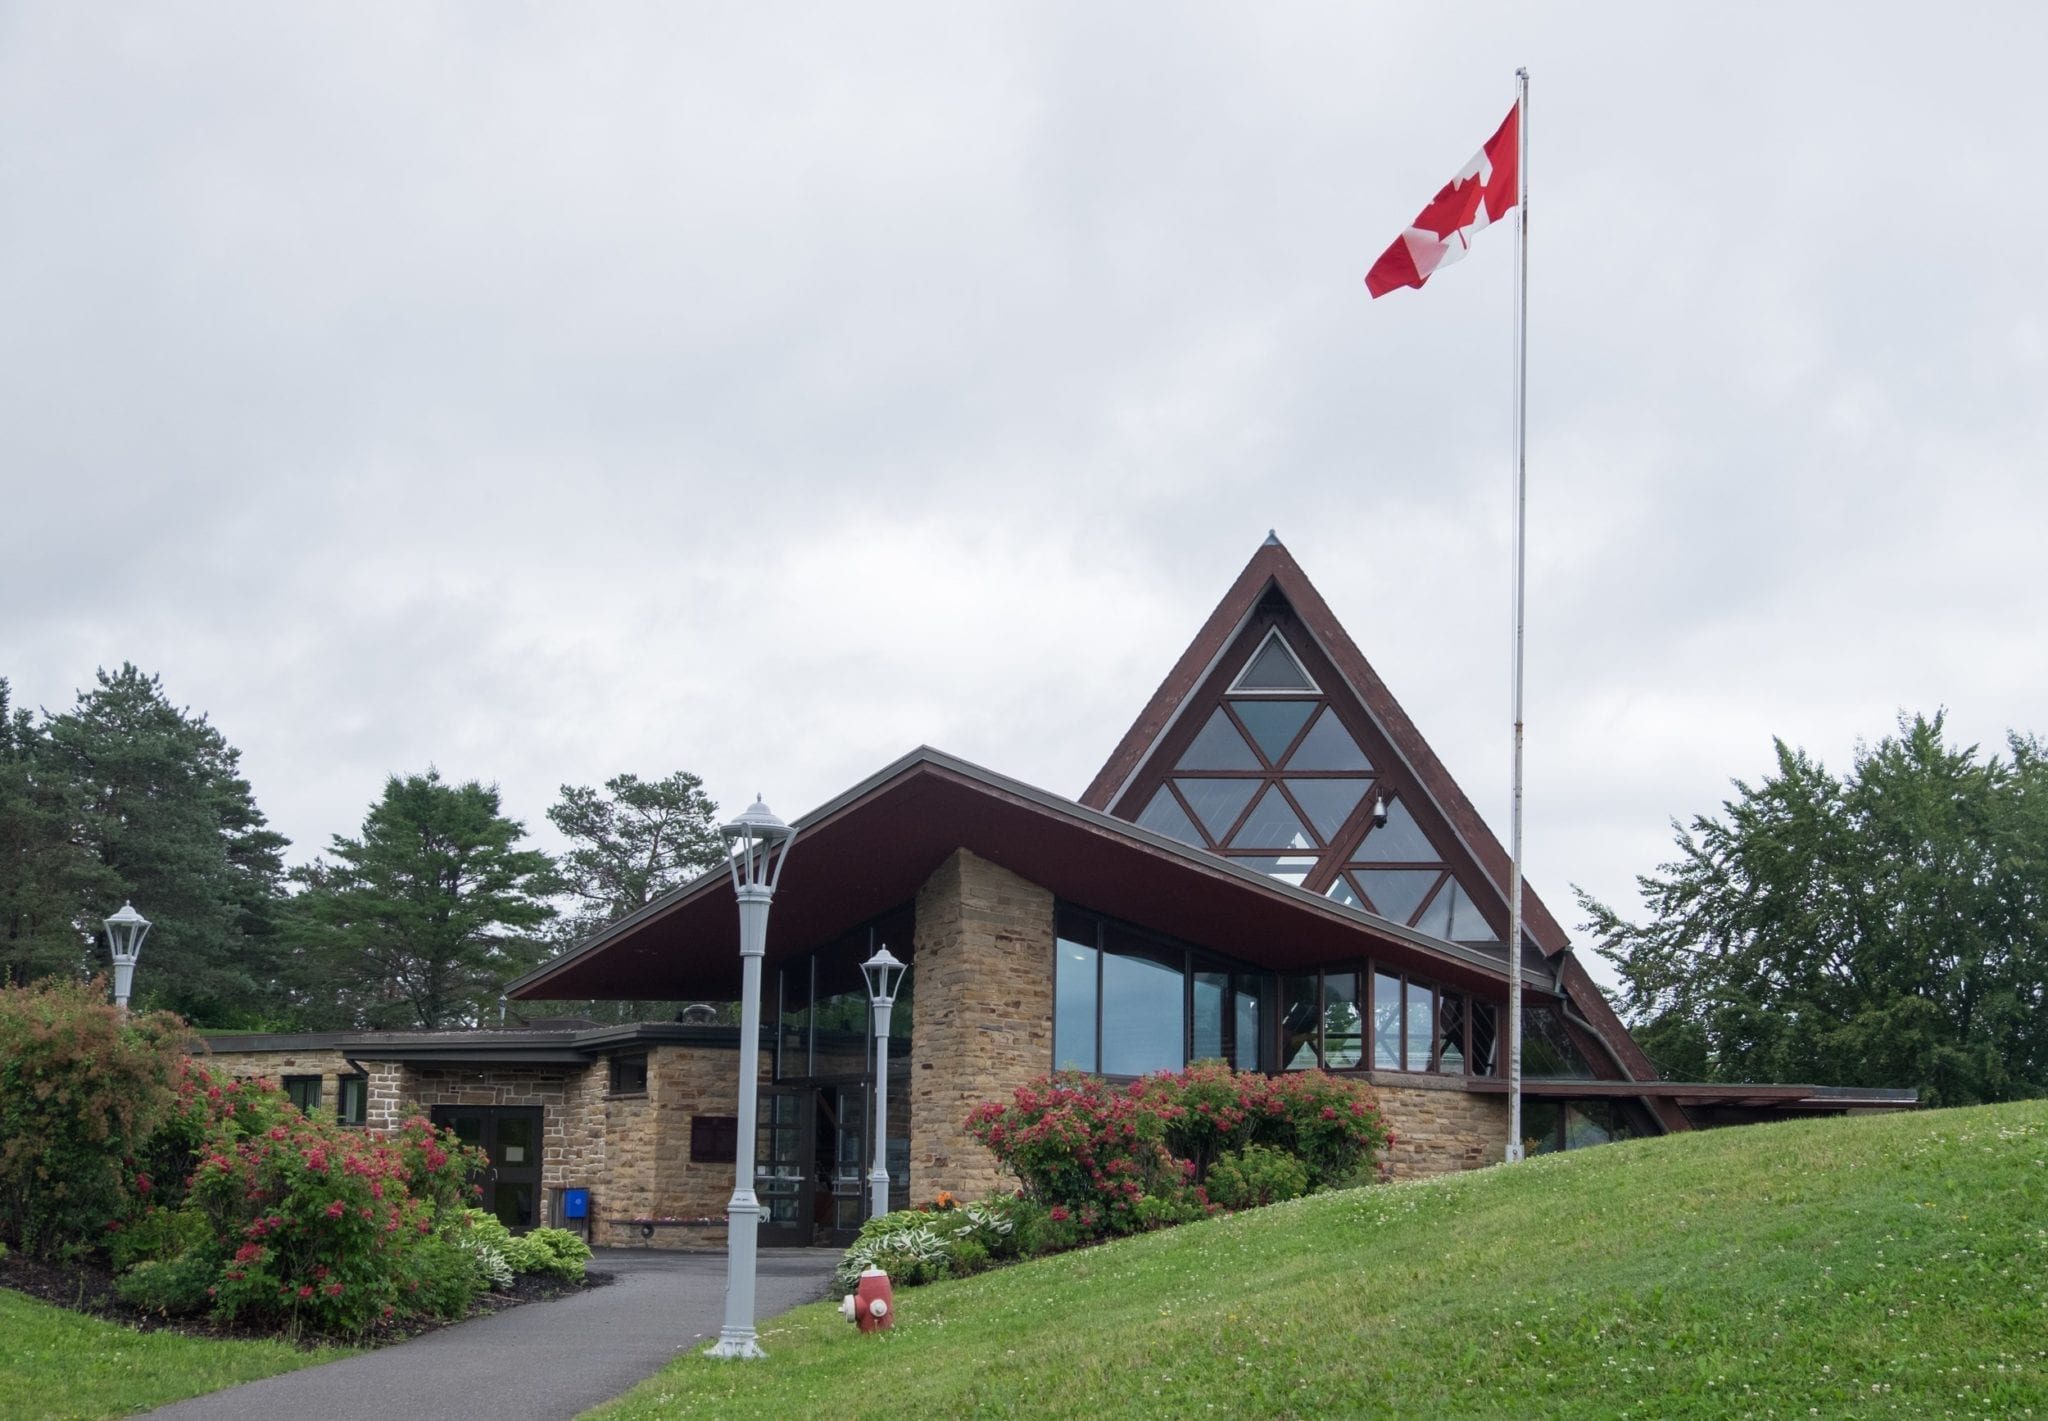 A modern triangular church-shaped building with a Canadian flag flying in front.